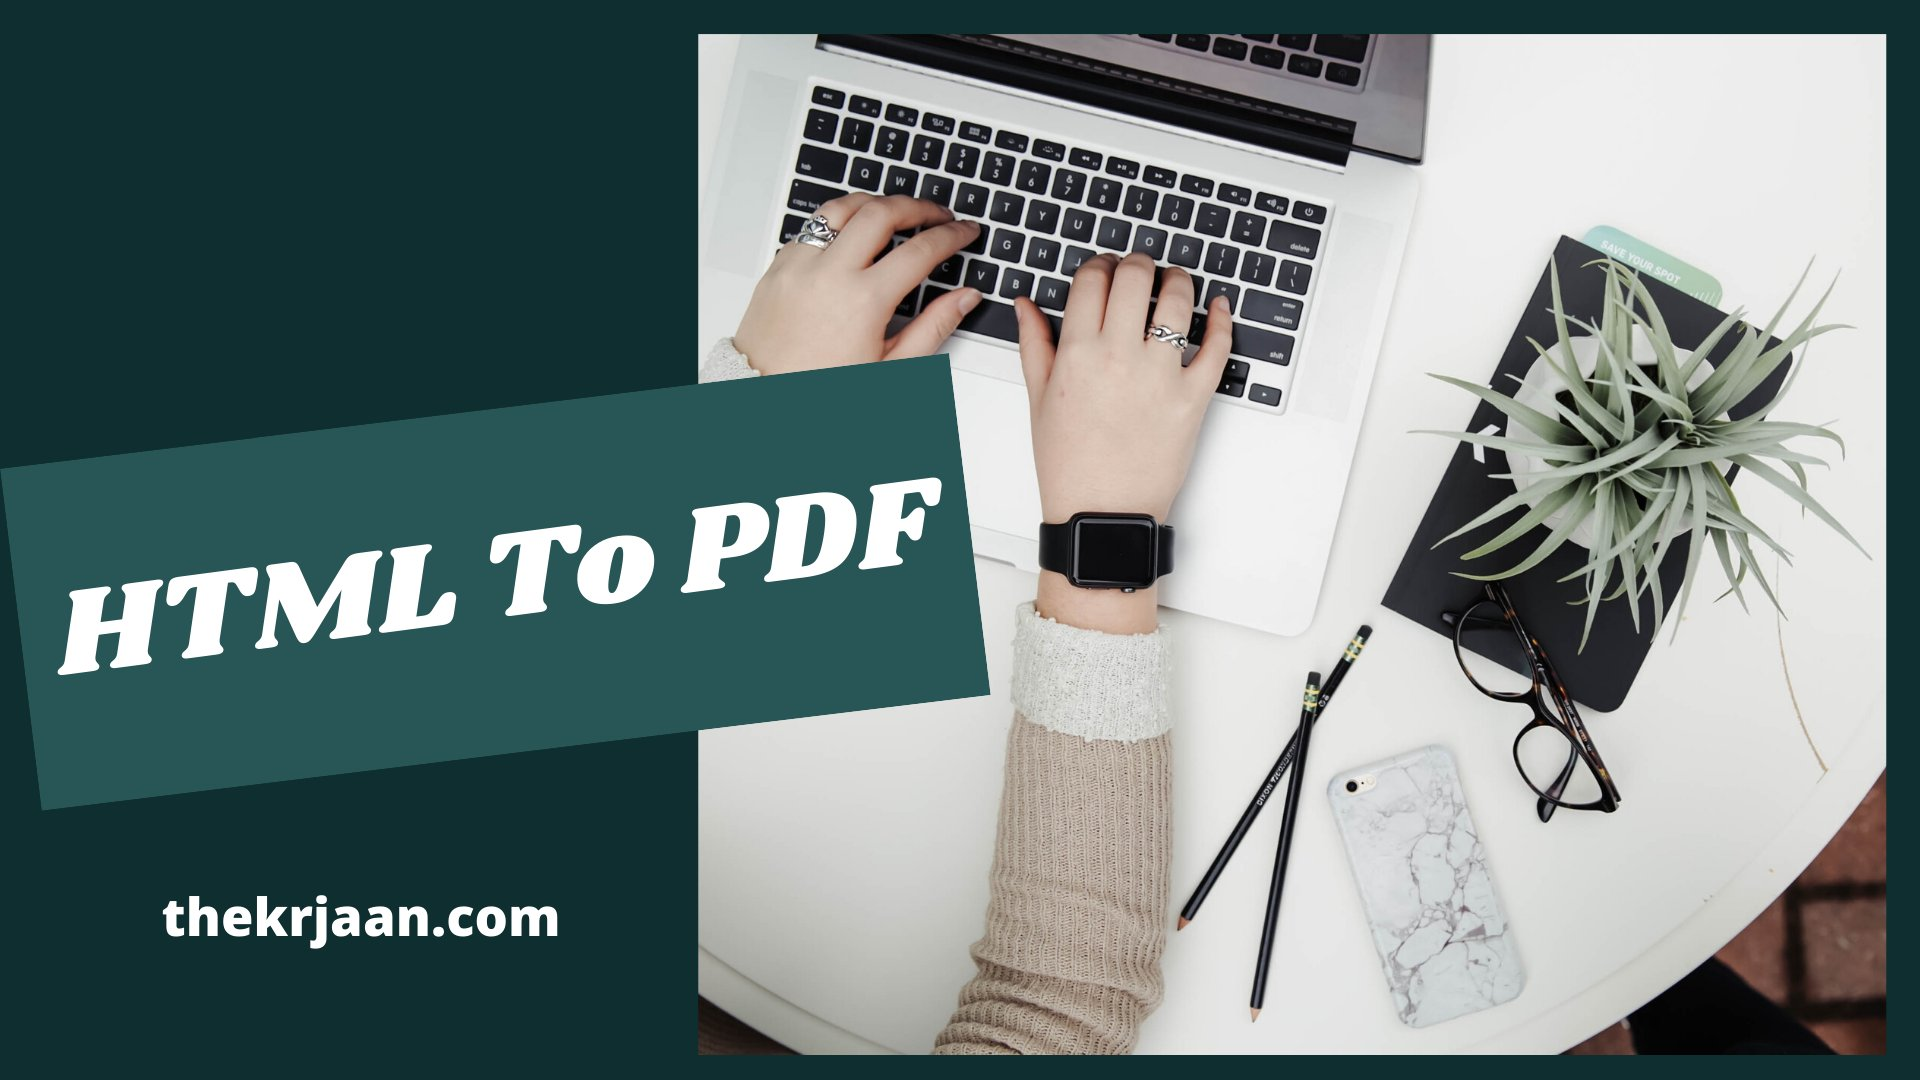 Benefits Of Using HTML To PDF Converter Full Guide